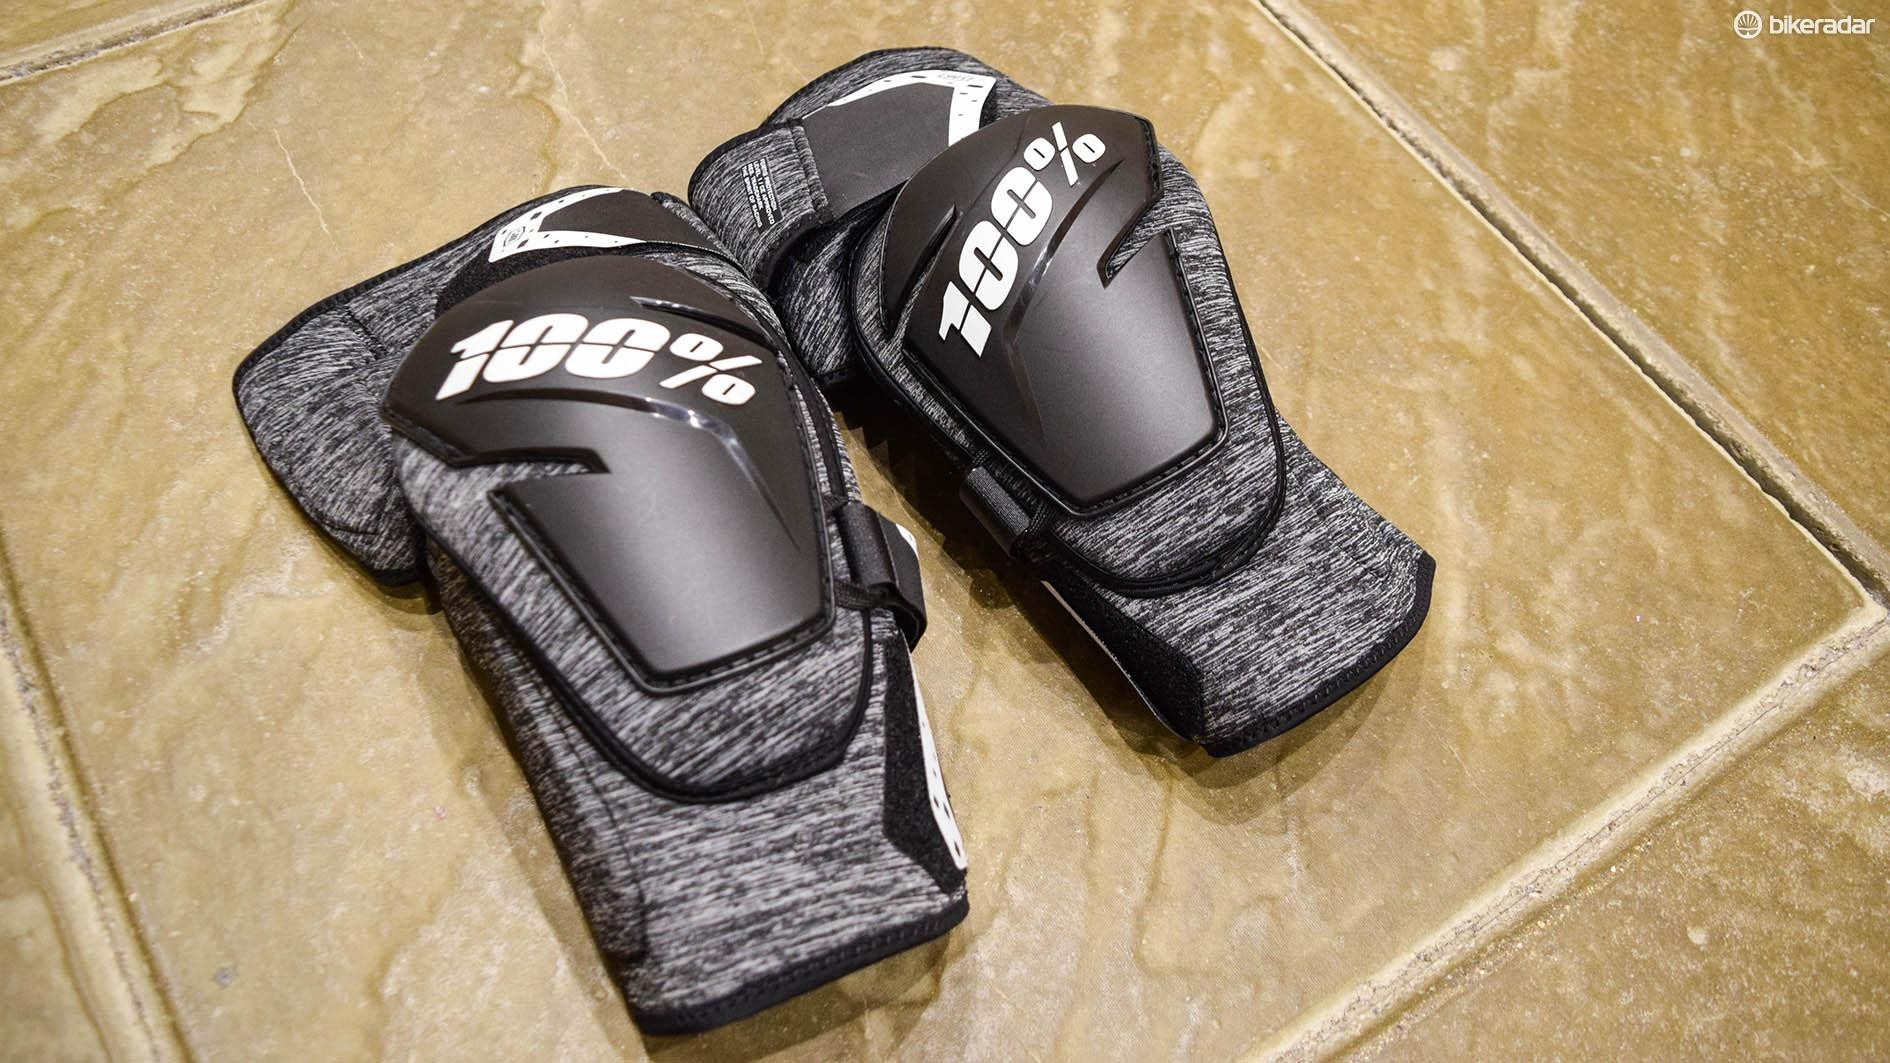 The Fortis pads are the second in 100%'s range